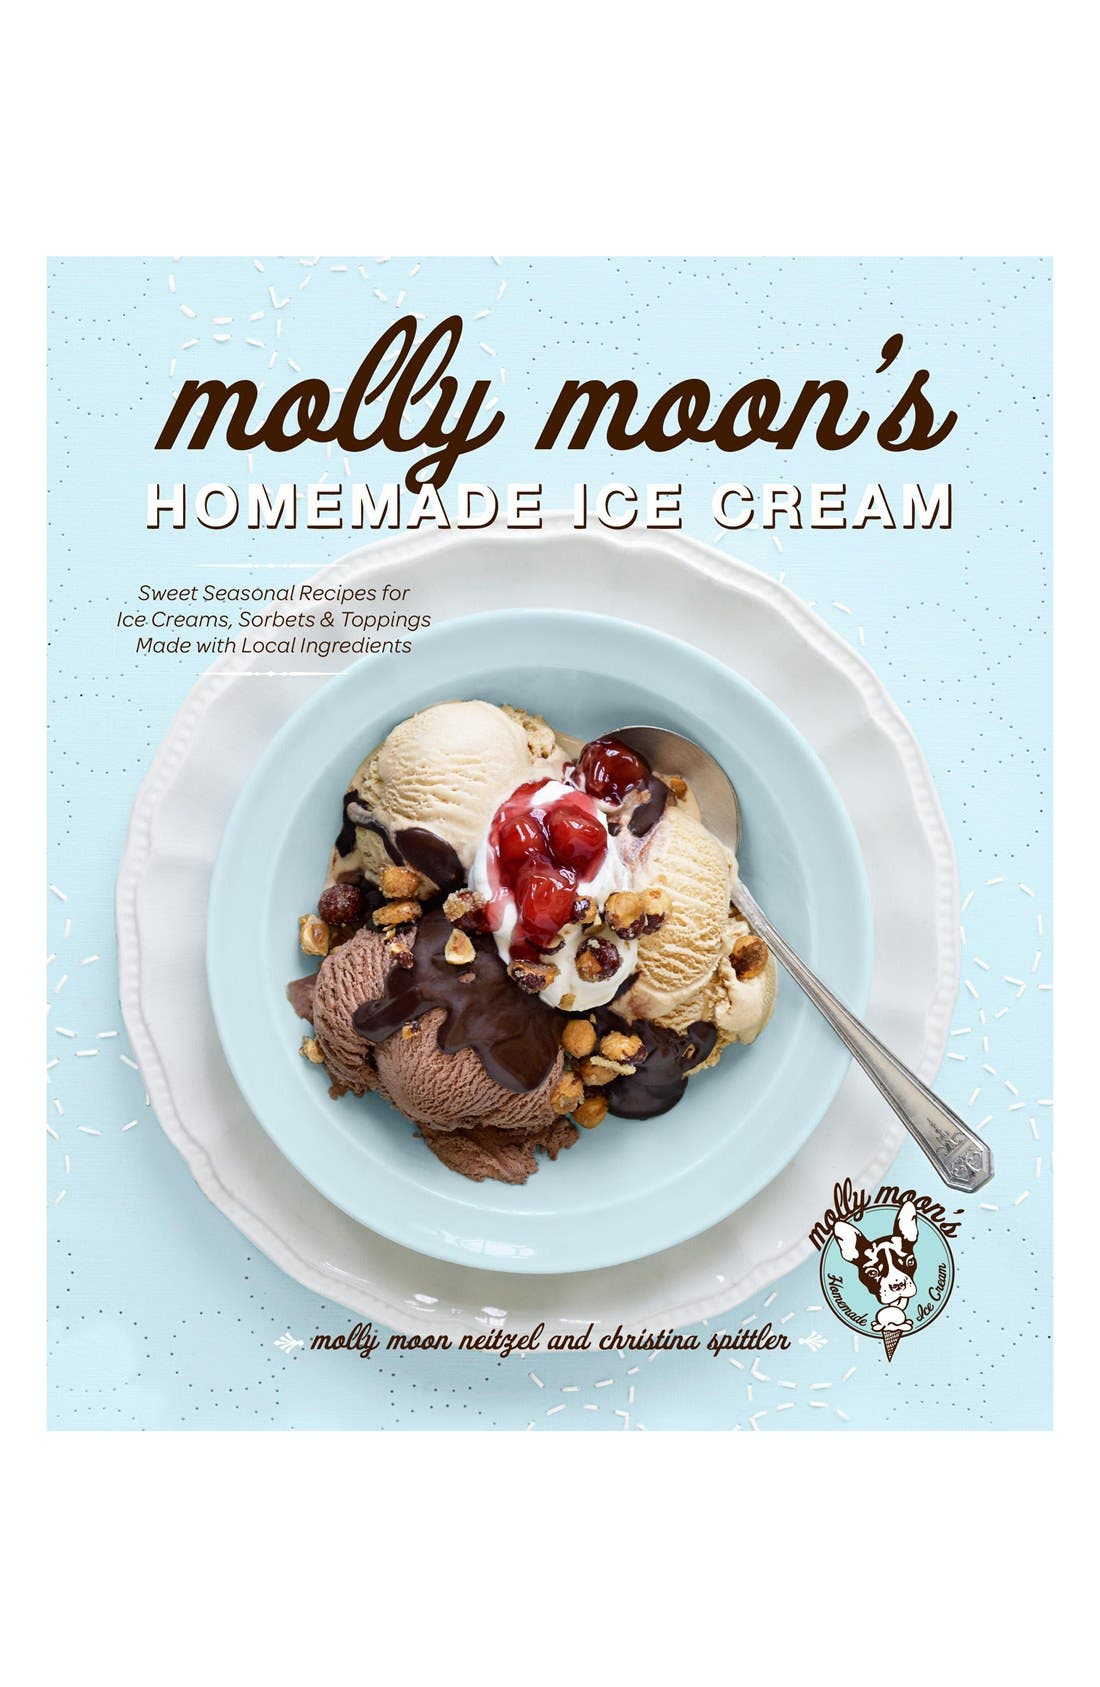 Alternate Image 1 Selected - 'Molly Moon's Homemade Ice Cream' Cookbook